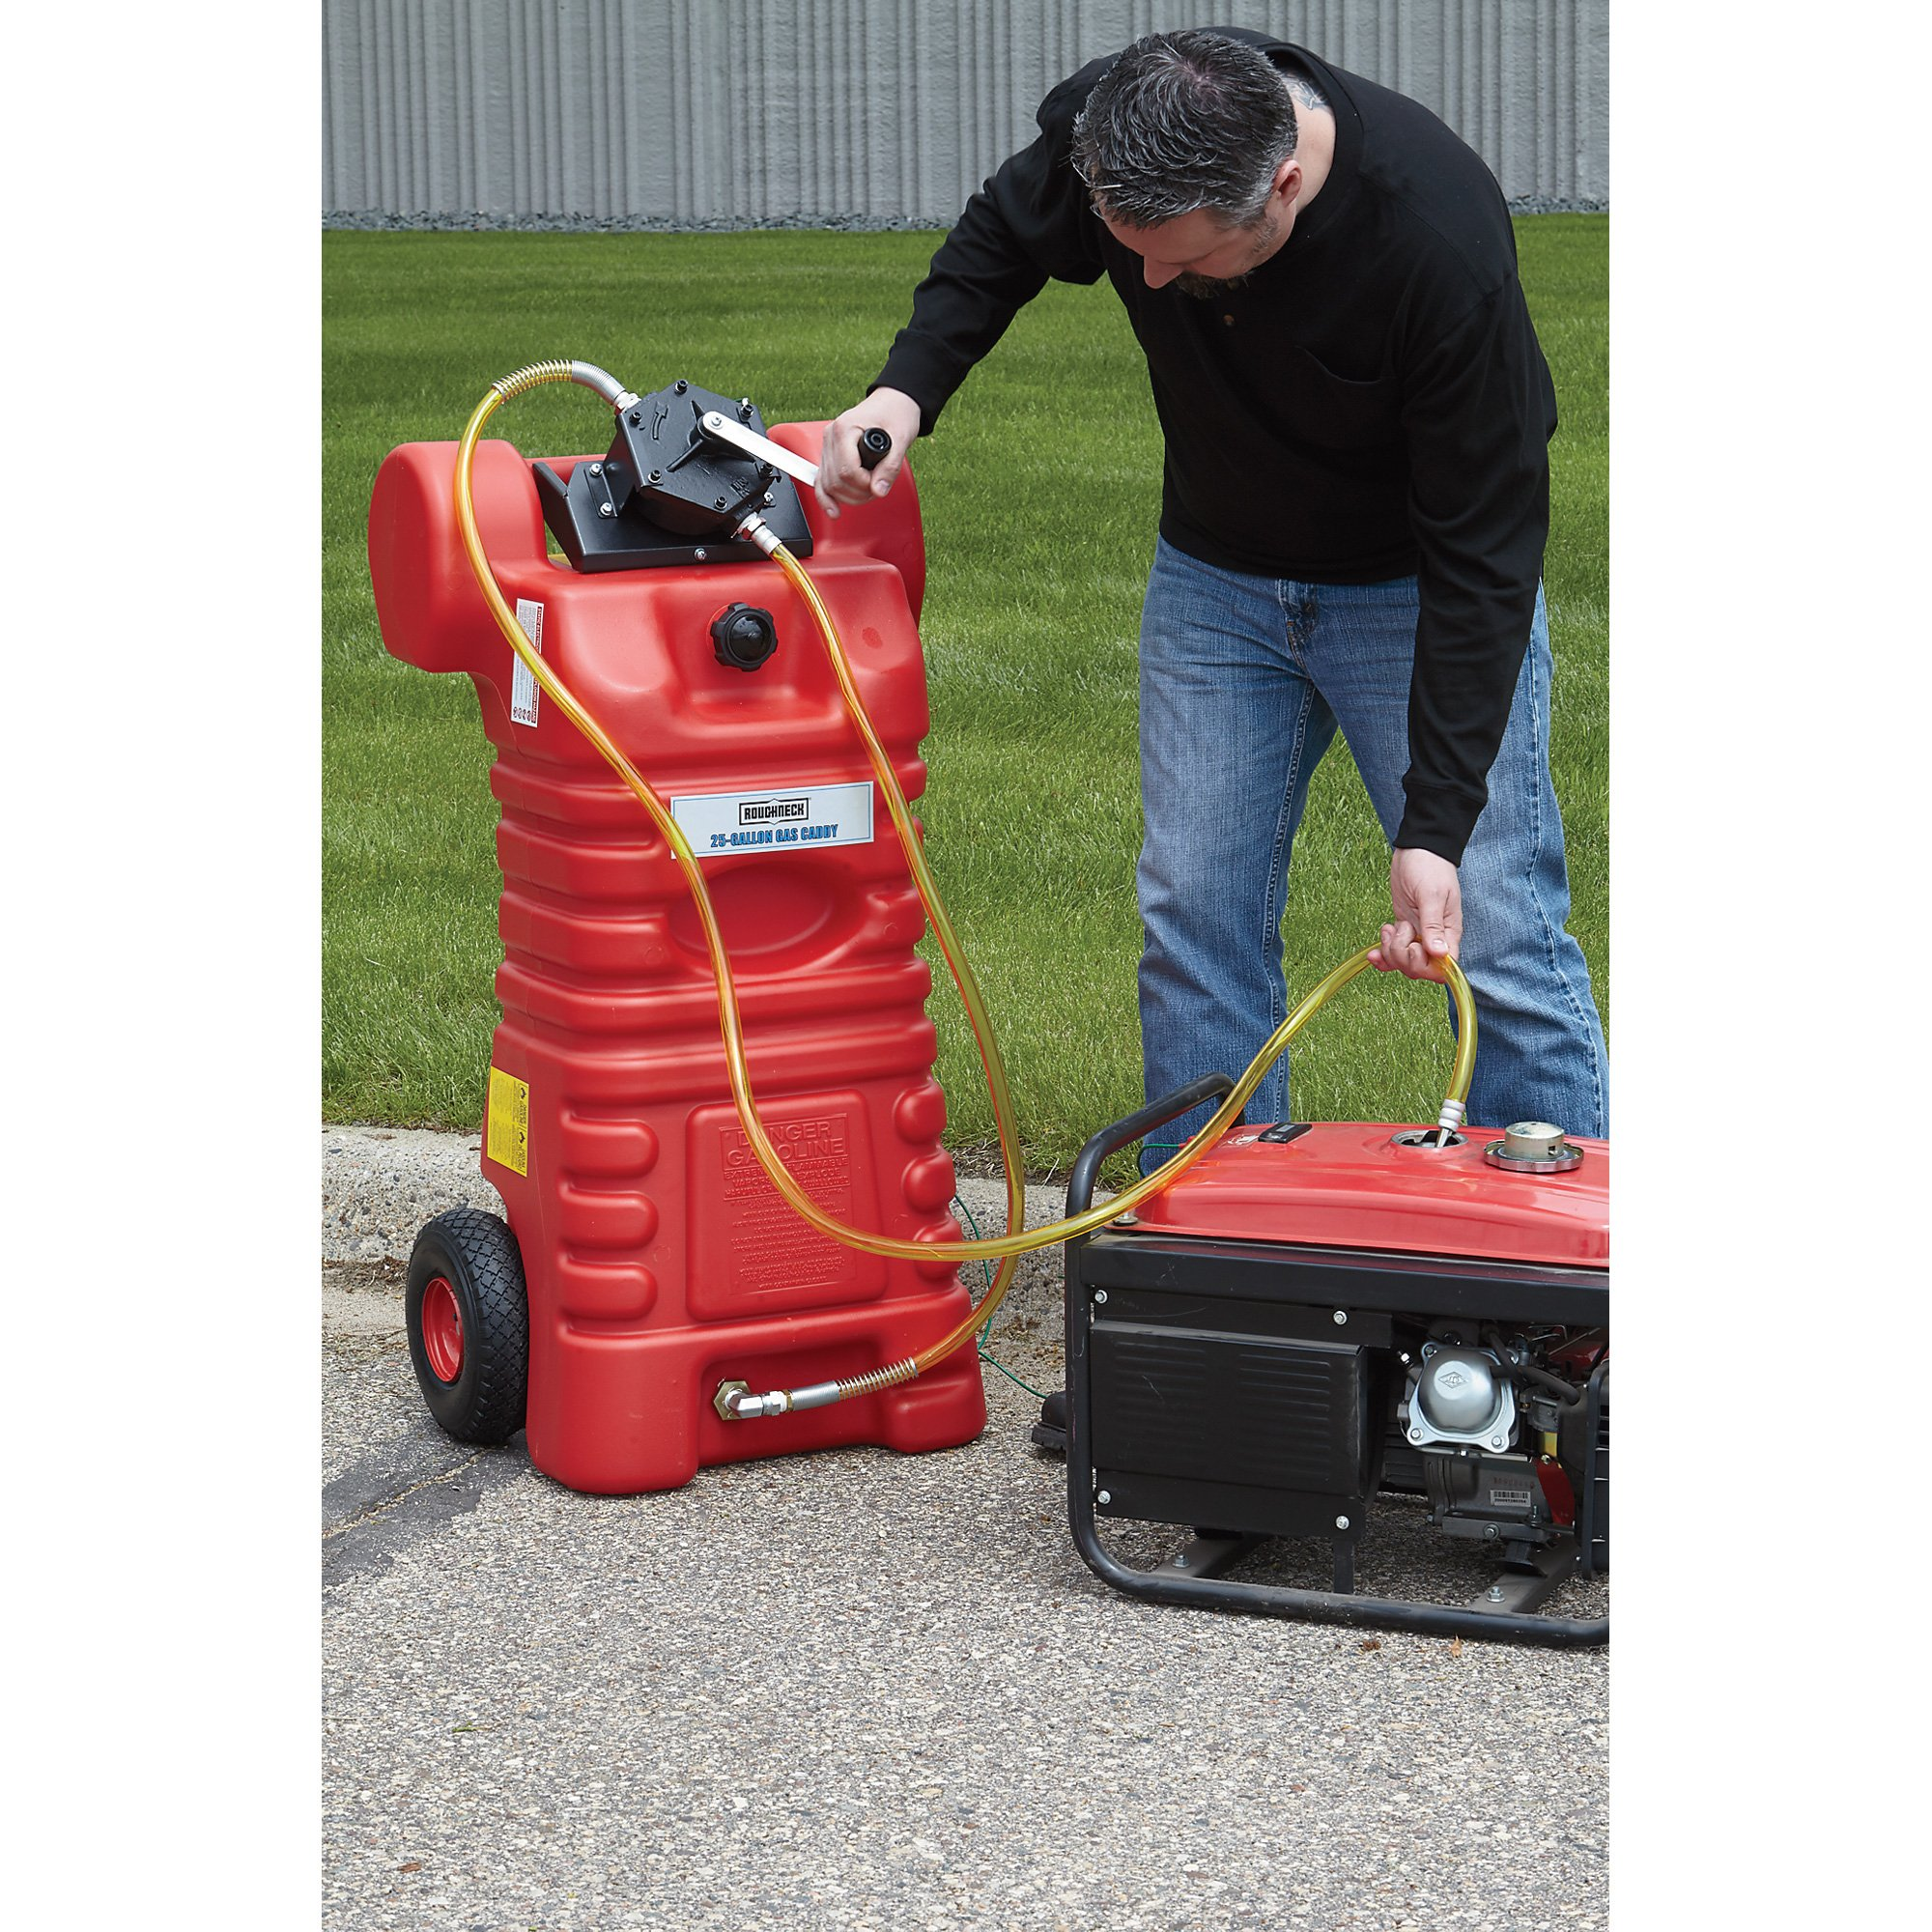 Roughneck Two-Way Rotary Pump Kit - Delivers 1-Gal. Per 12 Revolutions by Roughneck (Image #2)